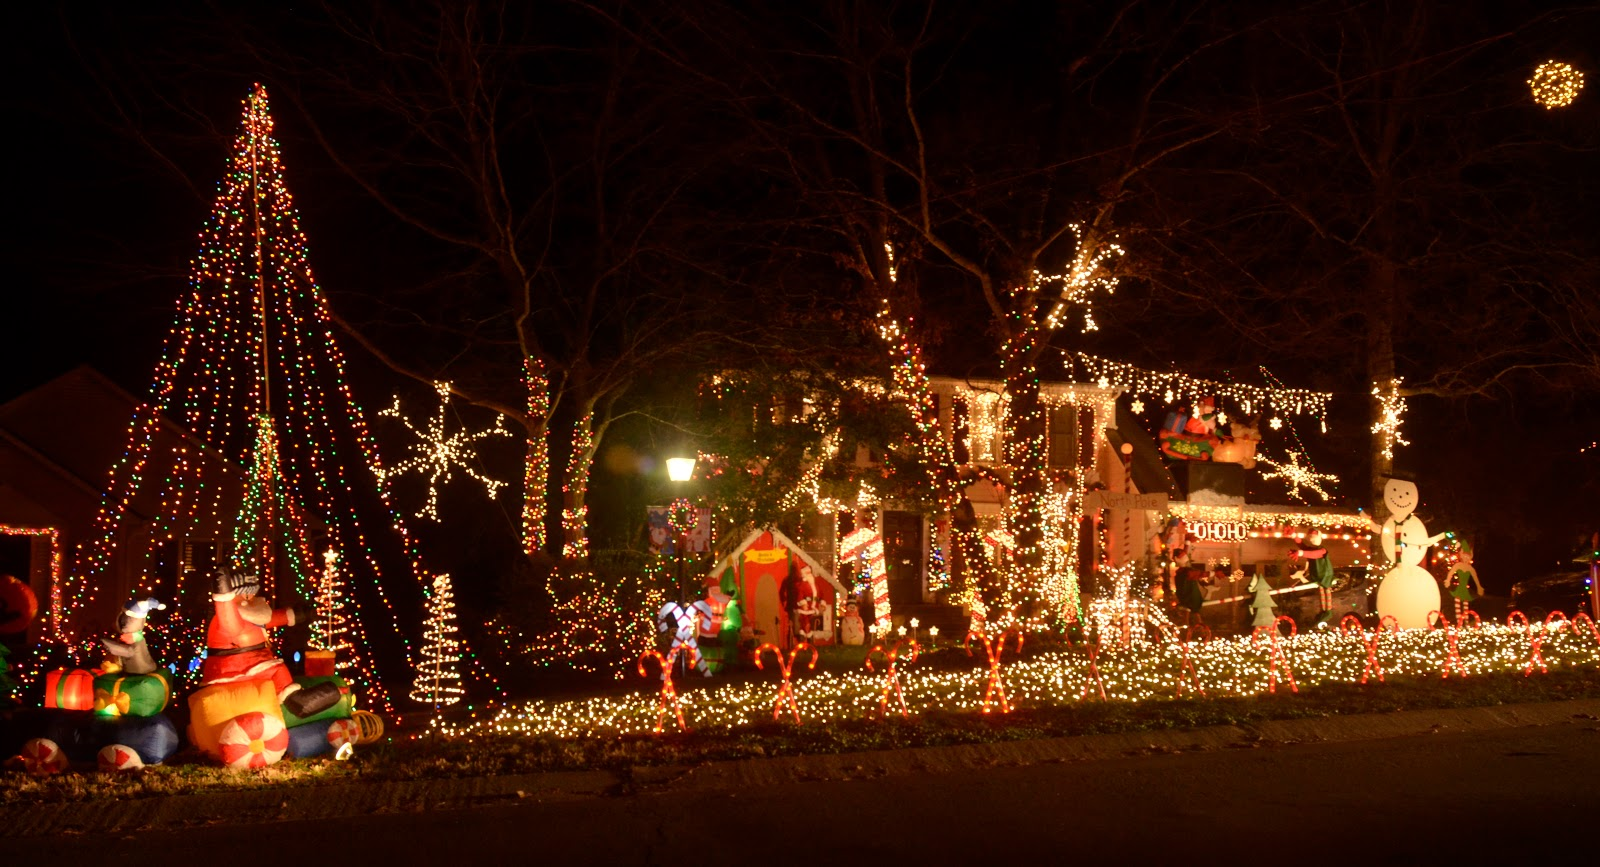 the entire front yard is covered in lights the house the roof the trees animation speakers playing christmas music see sawing elves a sleigh - How To Set Christmas Lights To Music